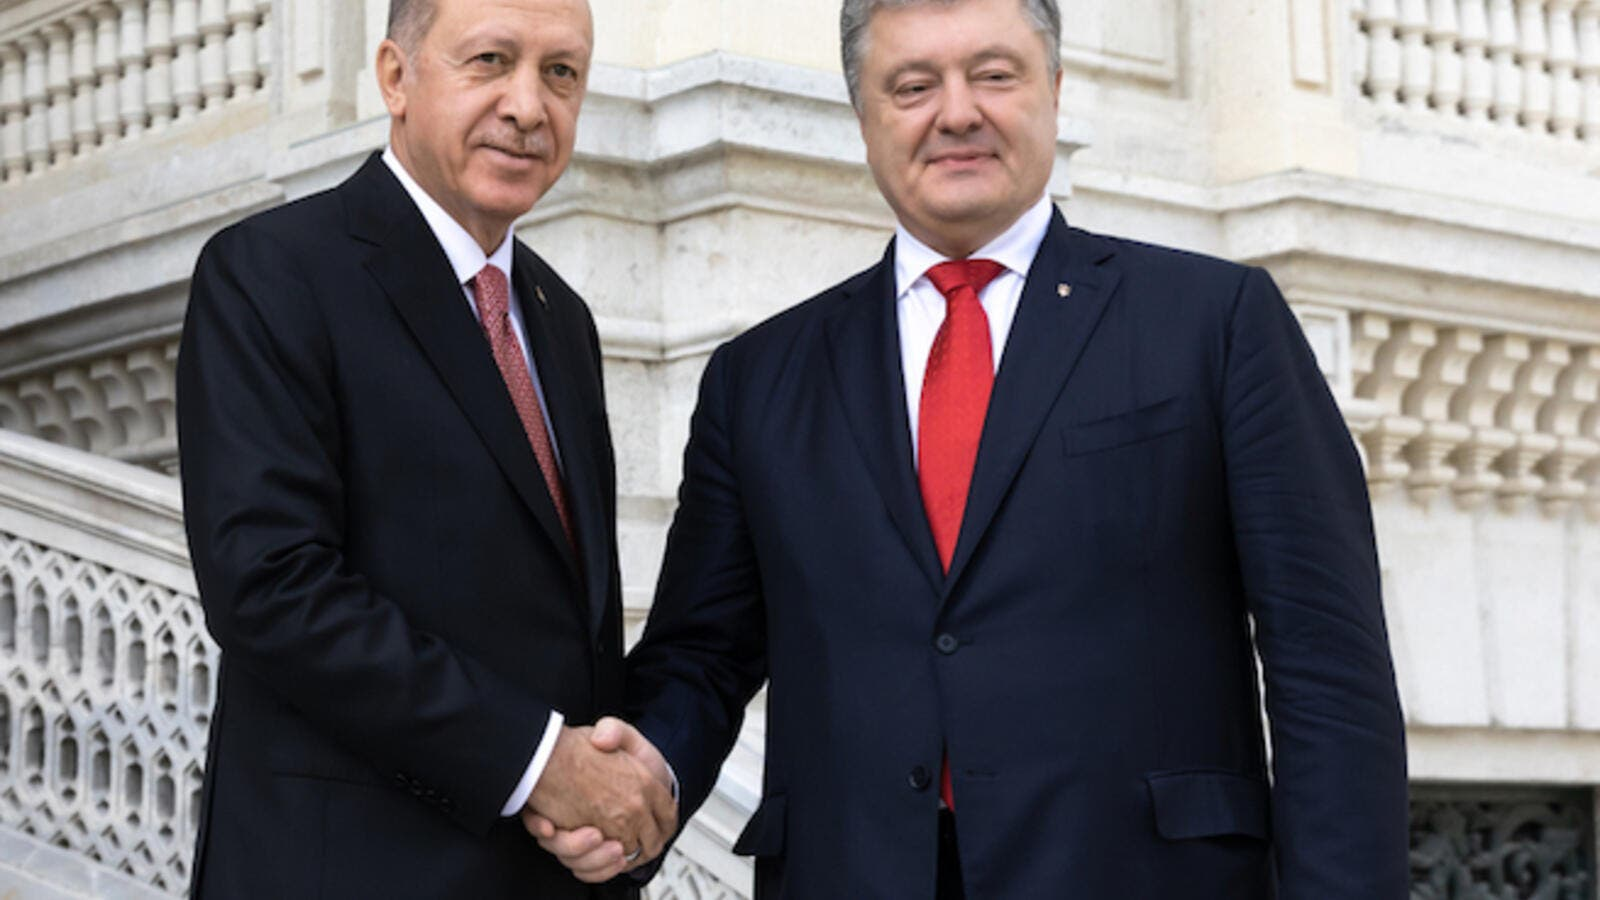 Poroshenko met Turkish President Recep Tayyip Erdogan during the 7th meeting of the council between Turkey and Ukraine held in Istanbul on Saturday. (Shutterstock)